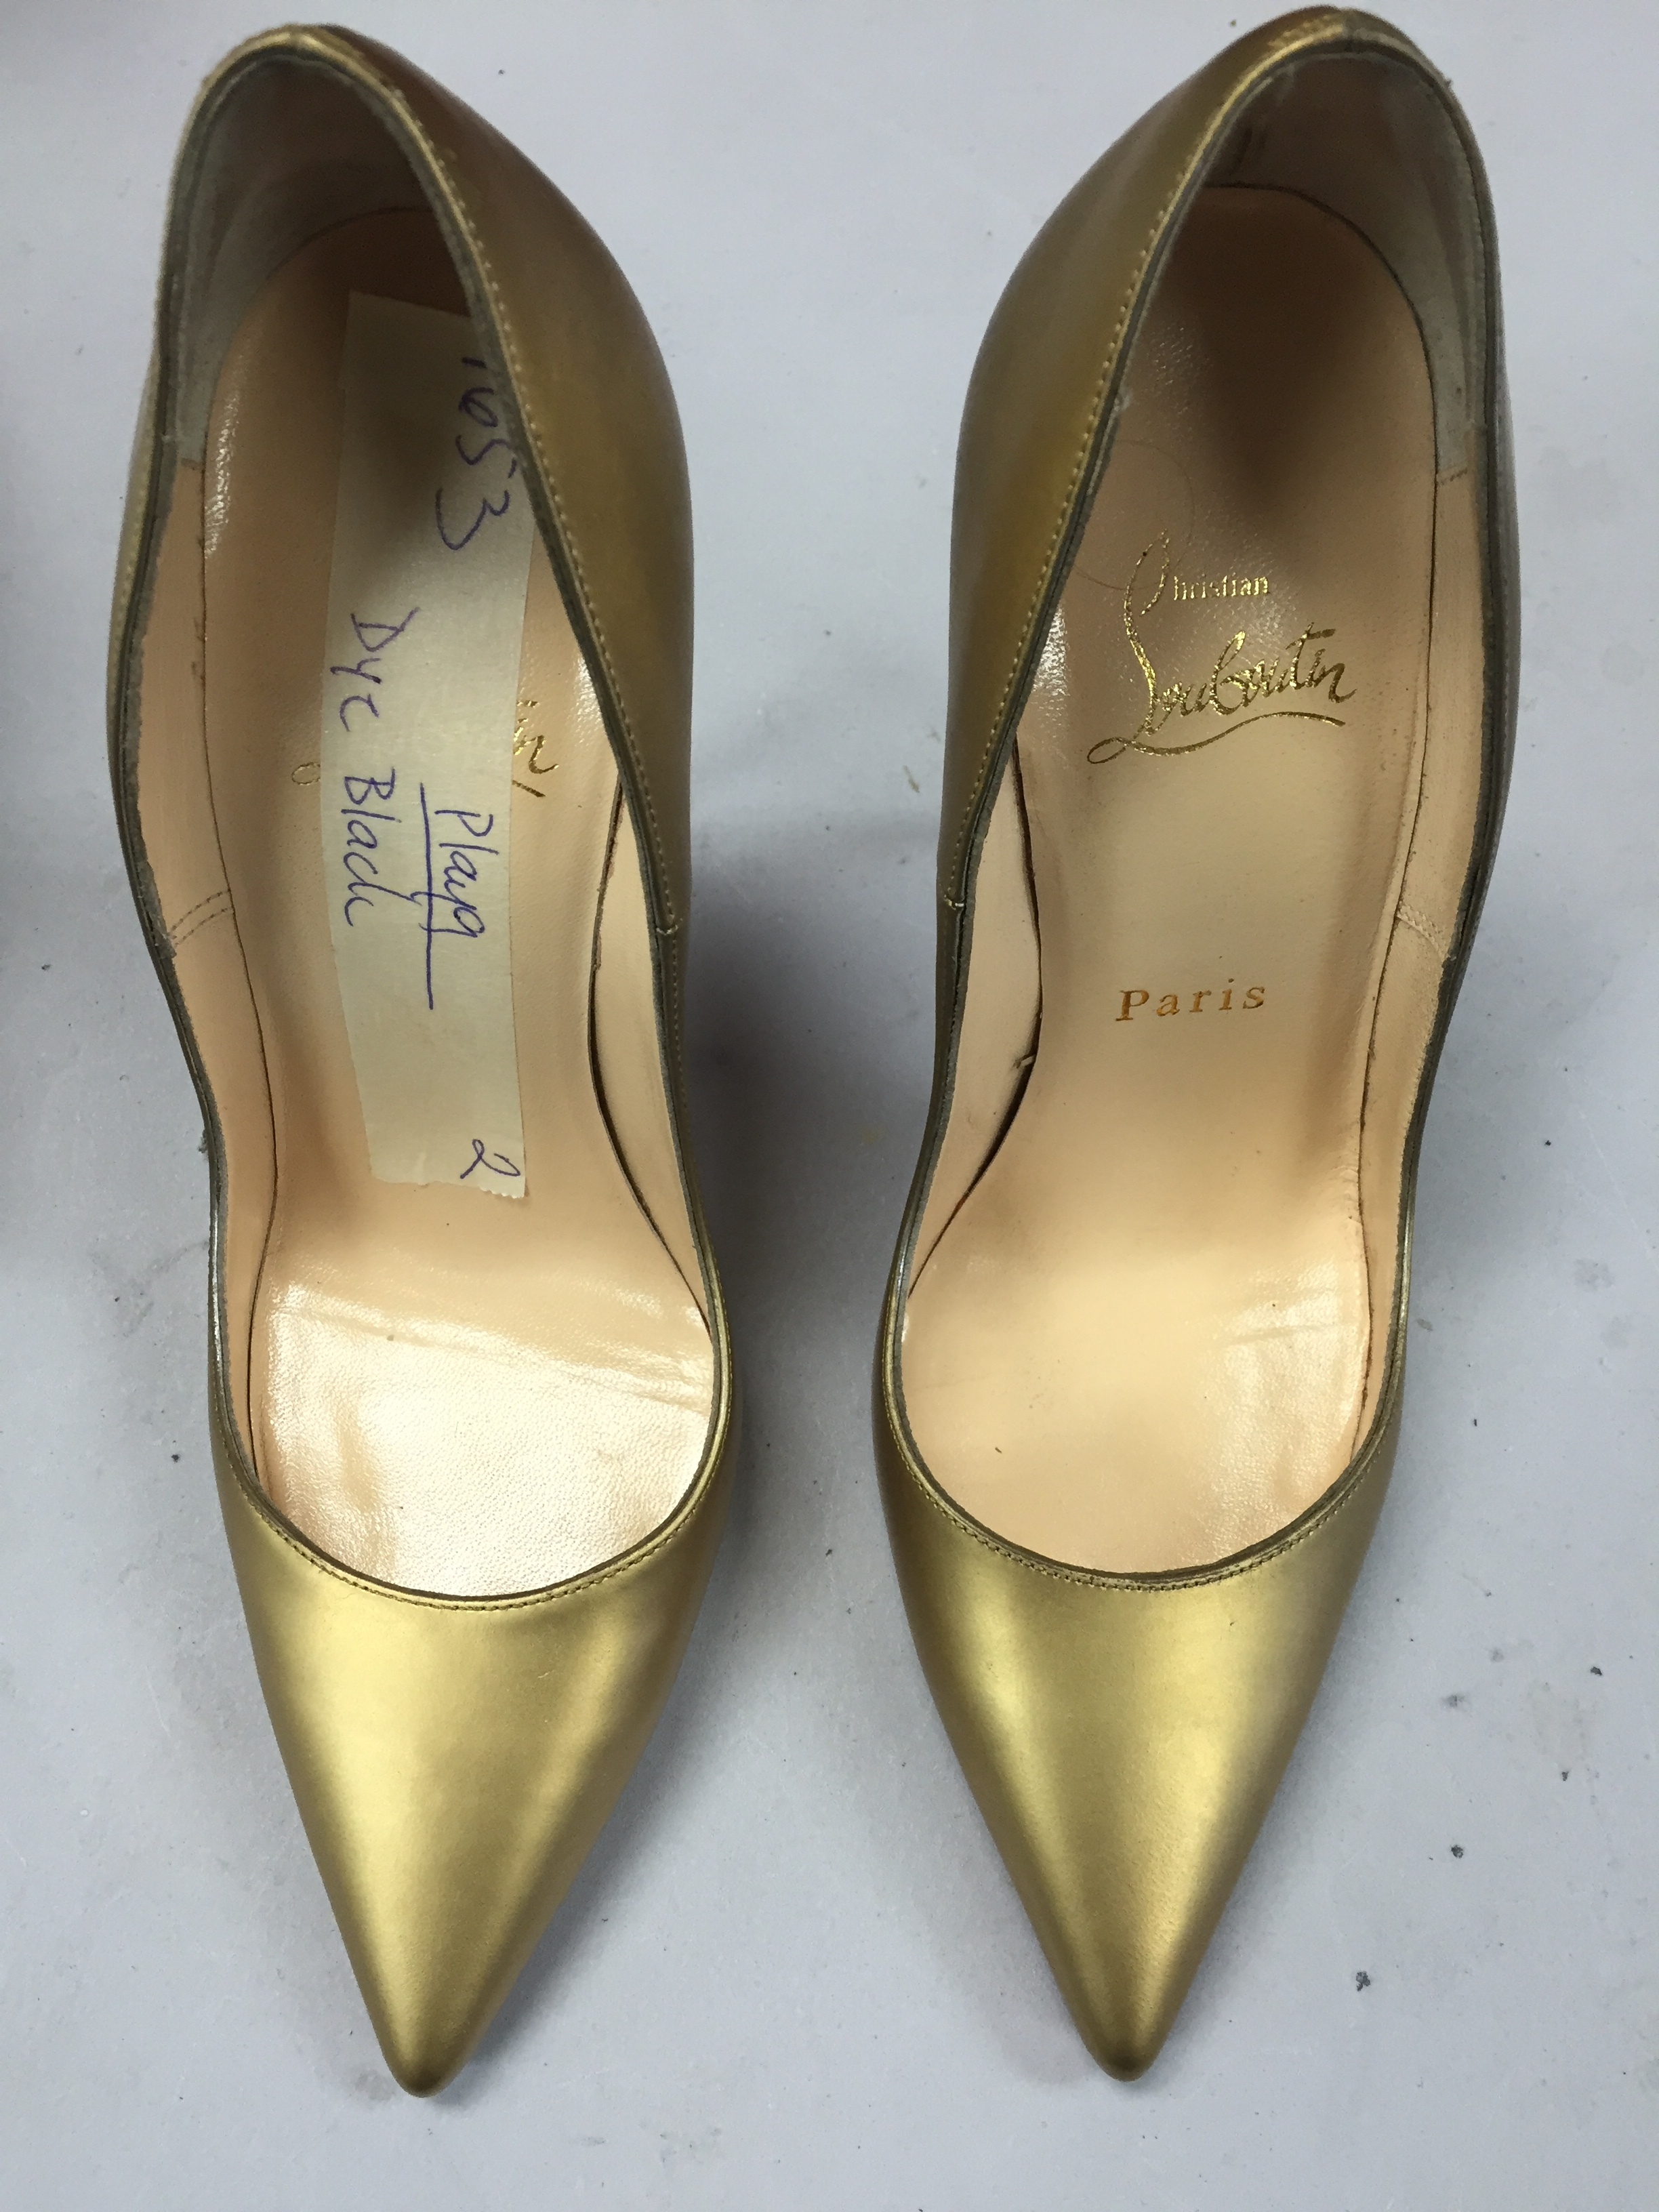 Gold Louboutins before